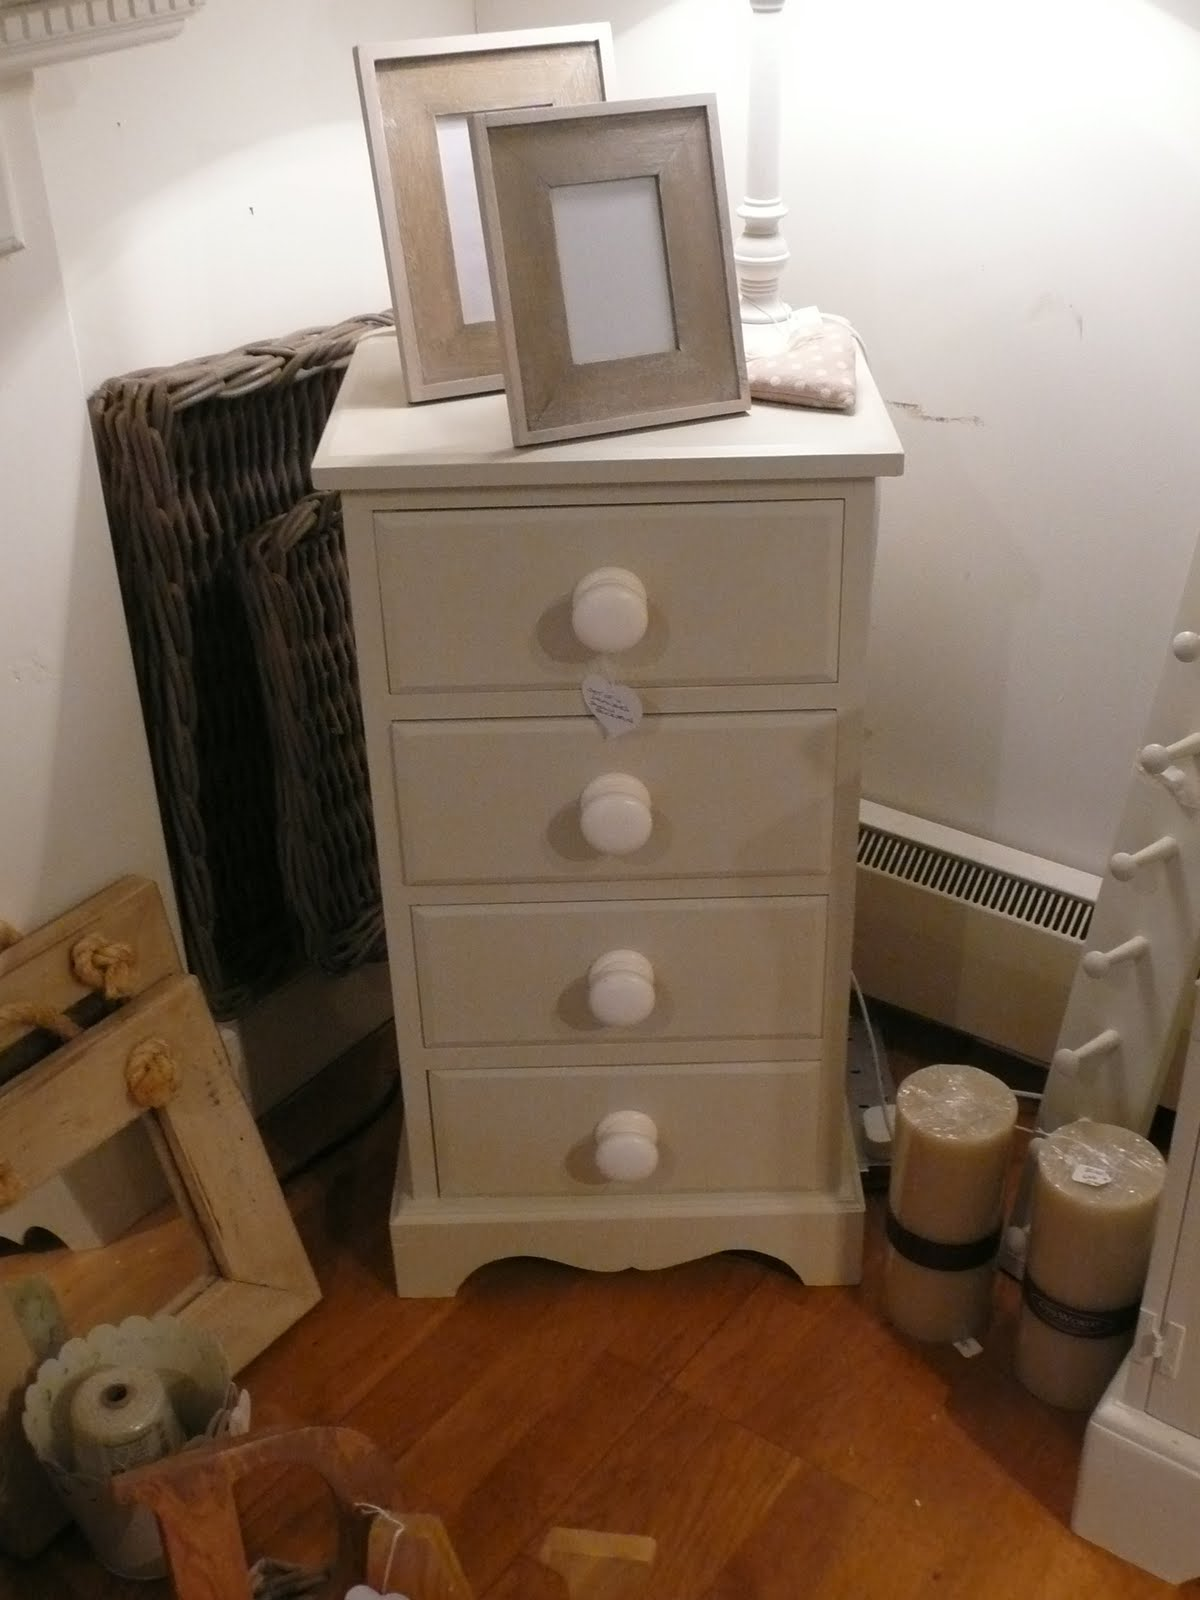 new arrivals pair of tall narrow chest of drawers bedside tables